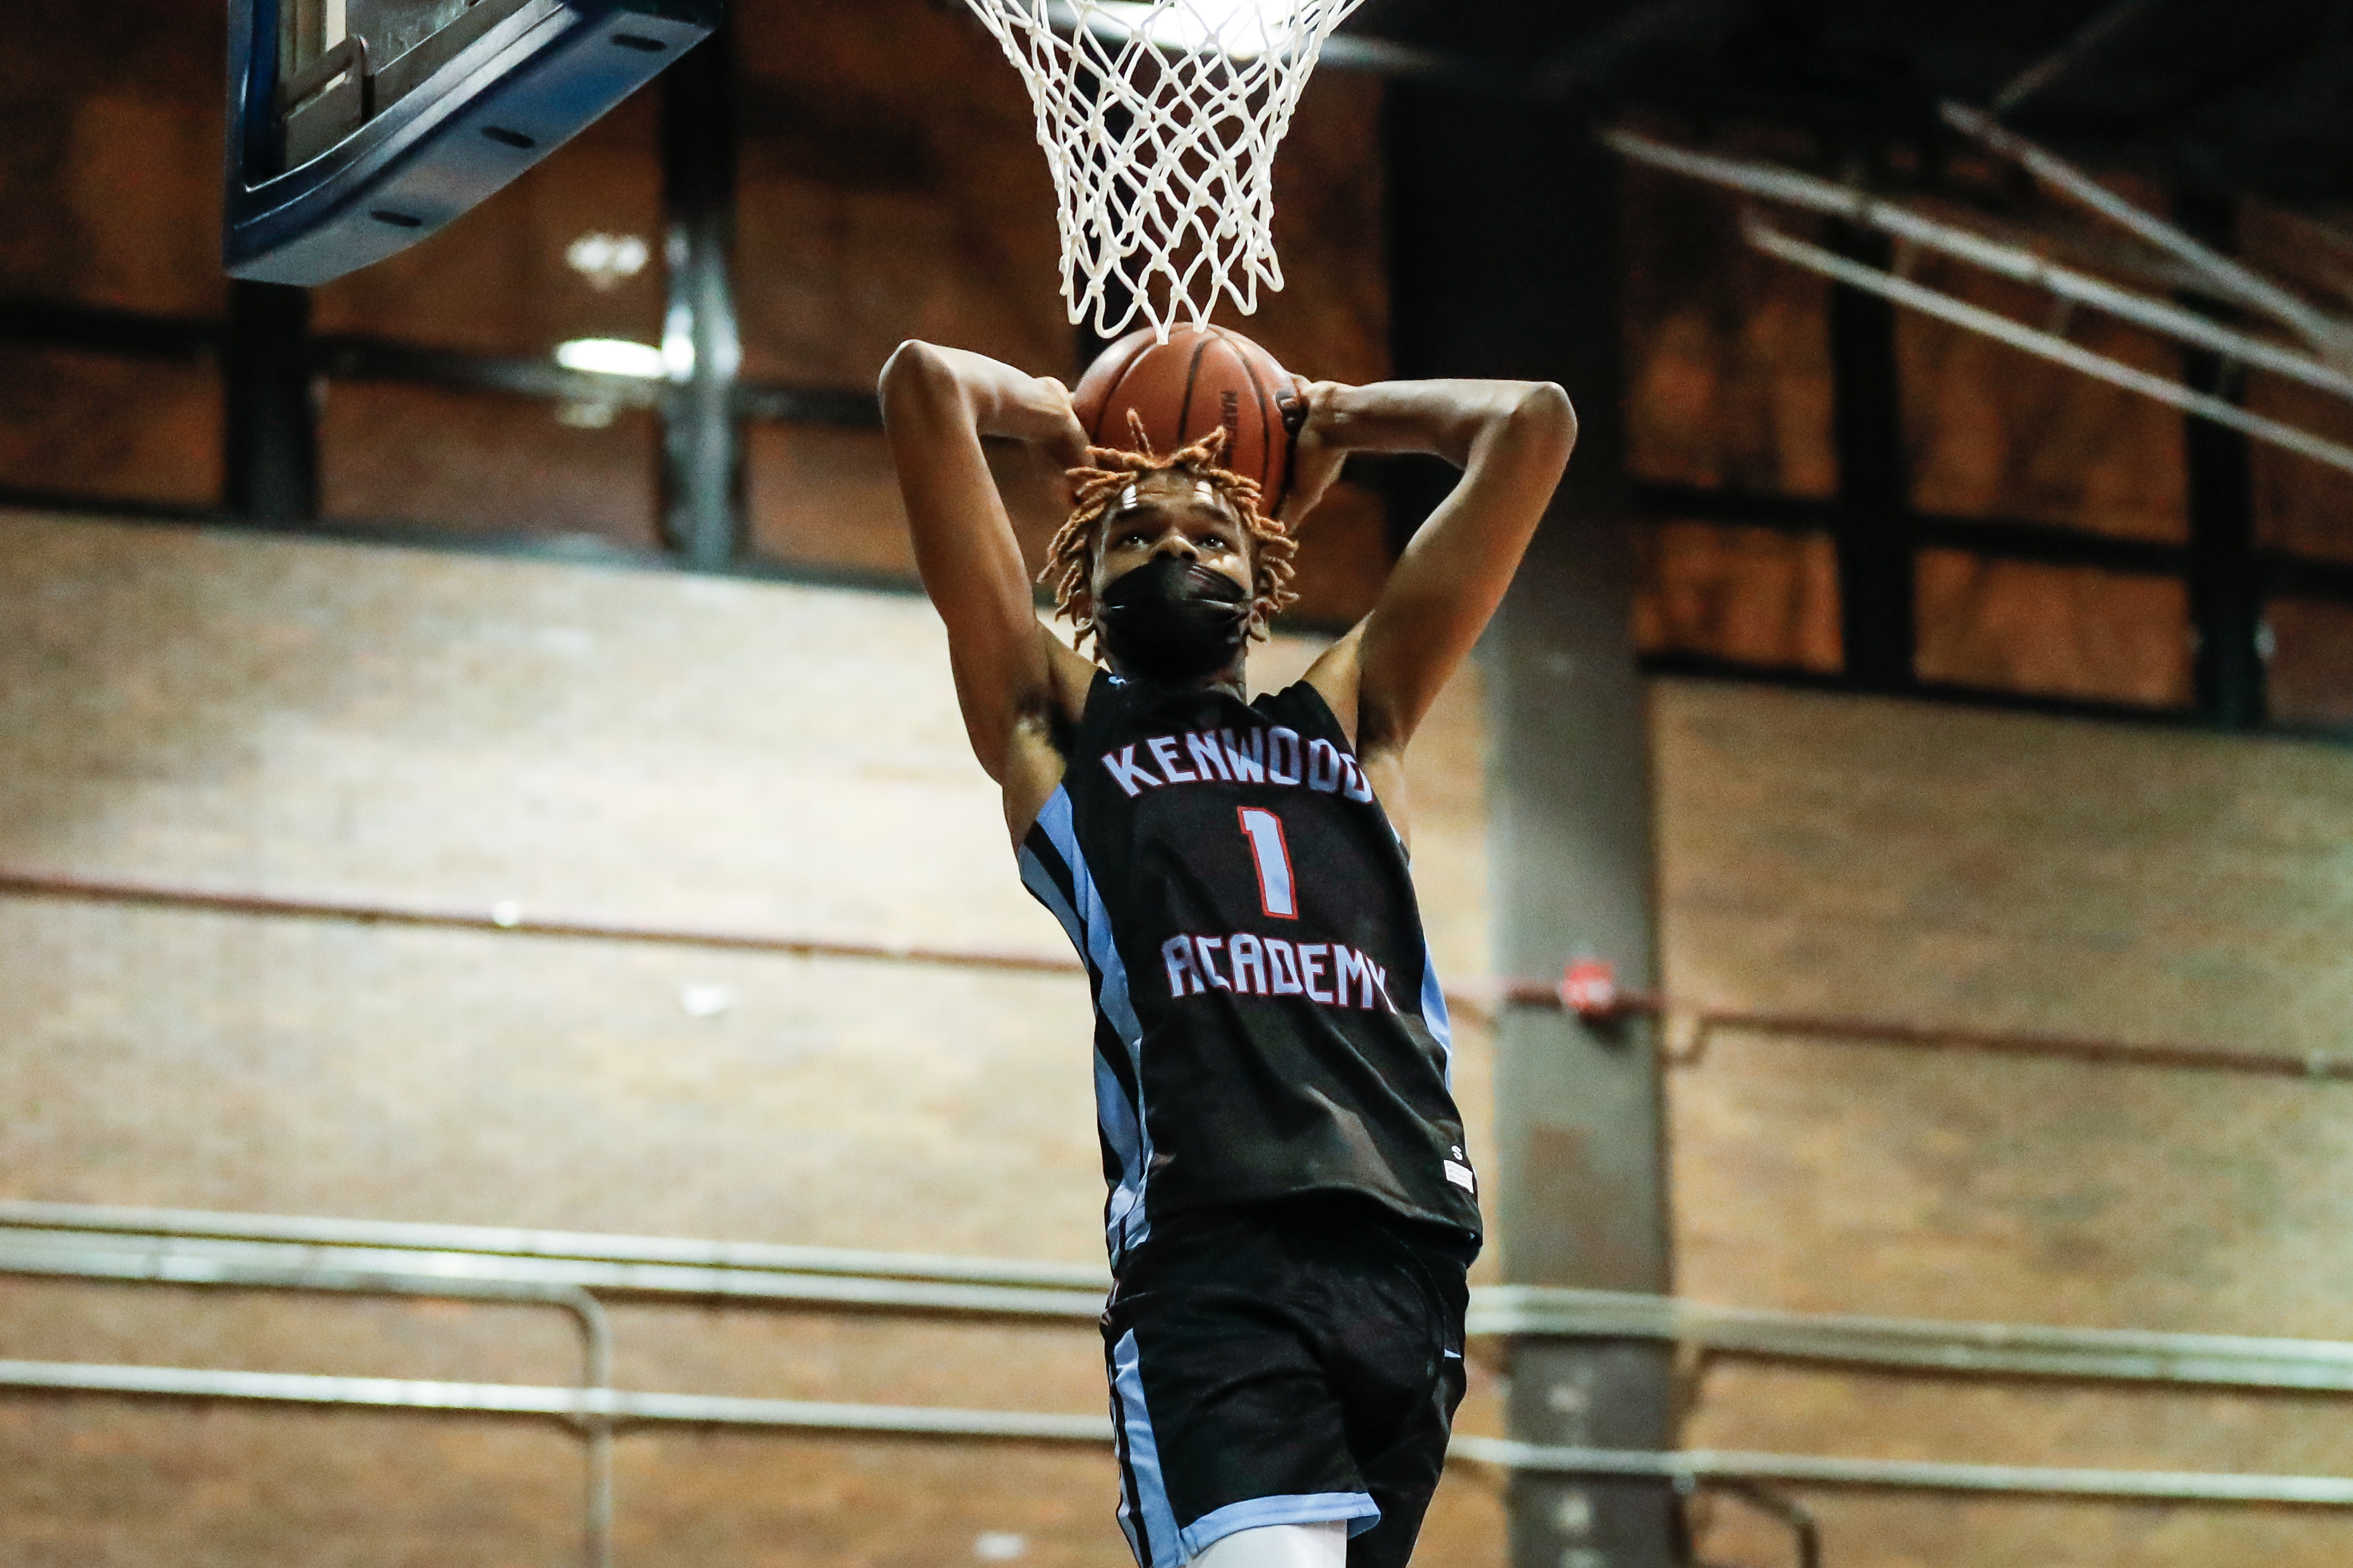 Kenwood's JJ Taylor (1) dunks the ball in the game against Clemente.